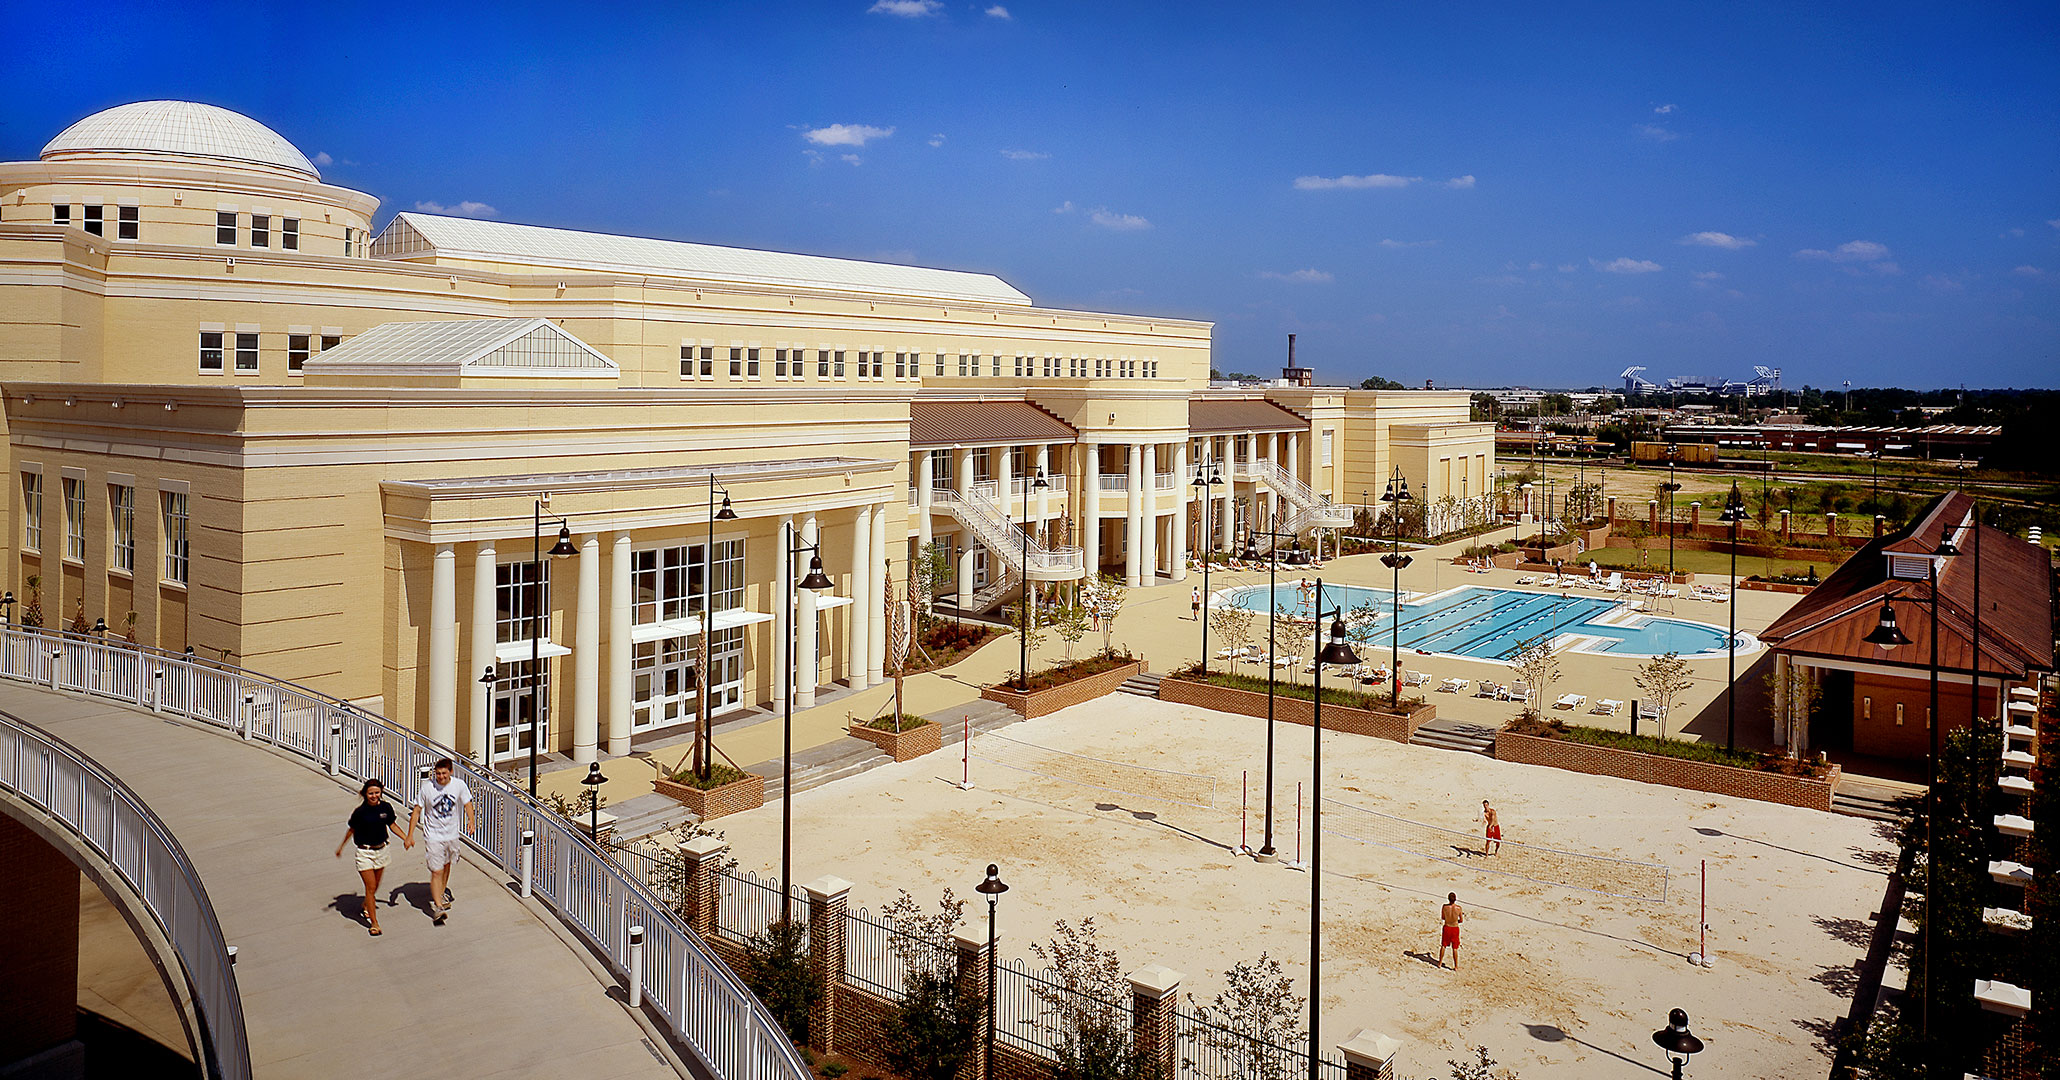 University of South Carolina worked with the most experienced architects in South Carolina Boudreaux to design the Strom Thurmond Wellness Center in downtown Columbia, SC.